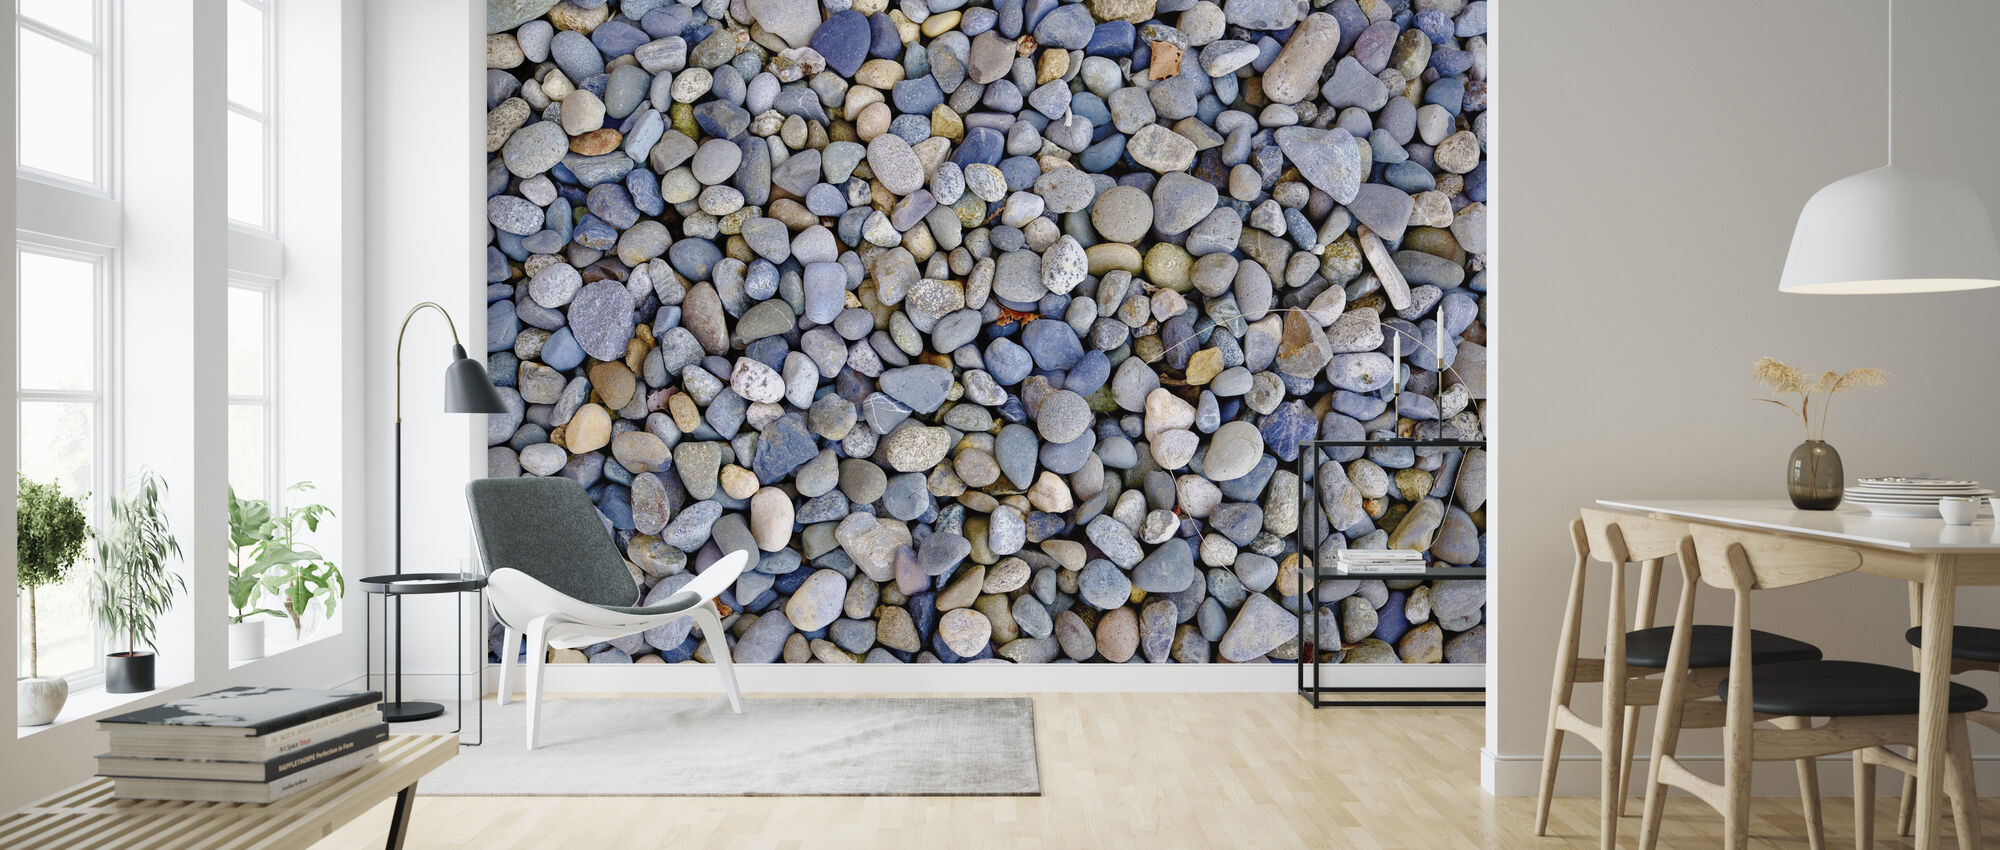 Colorful Pebbles - Wallpaper - Living Room